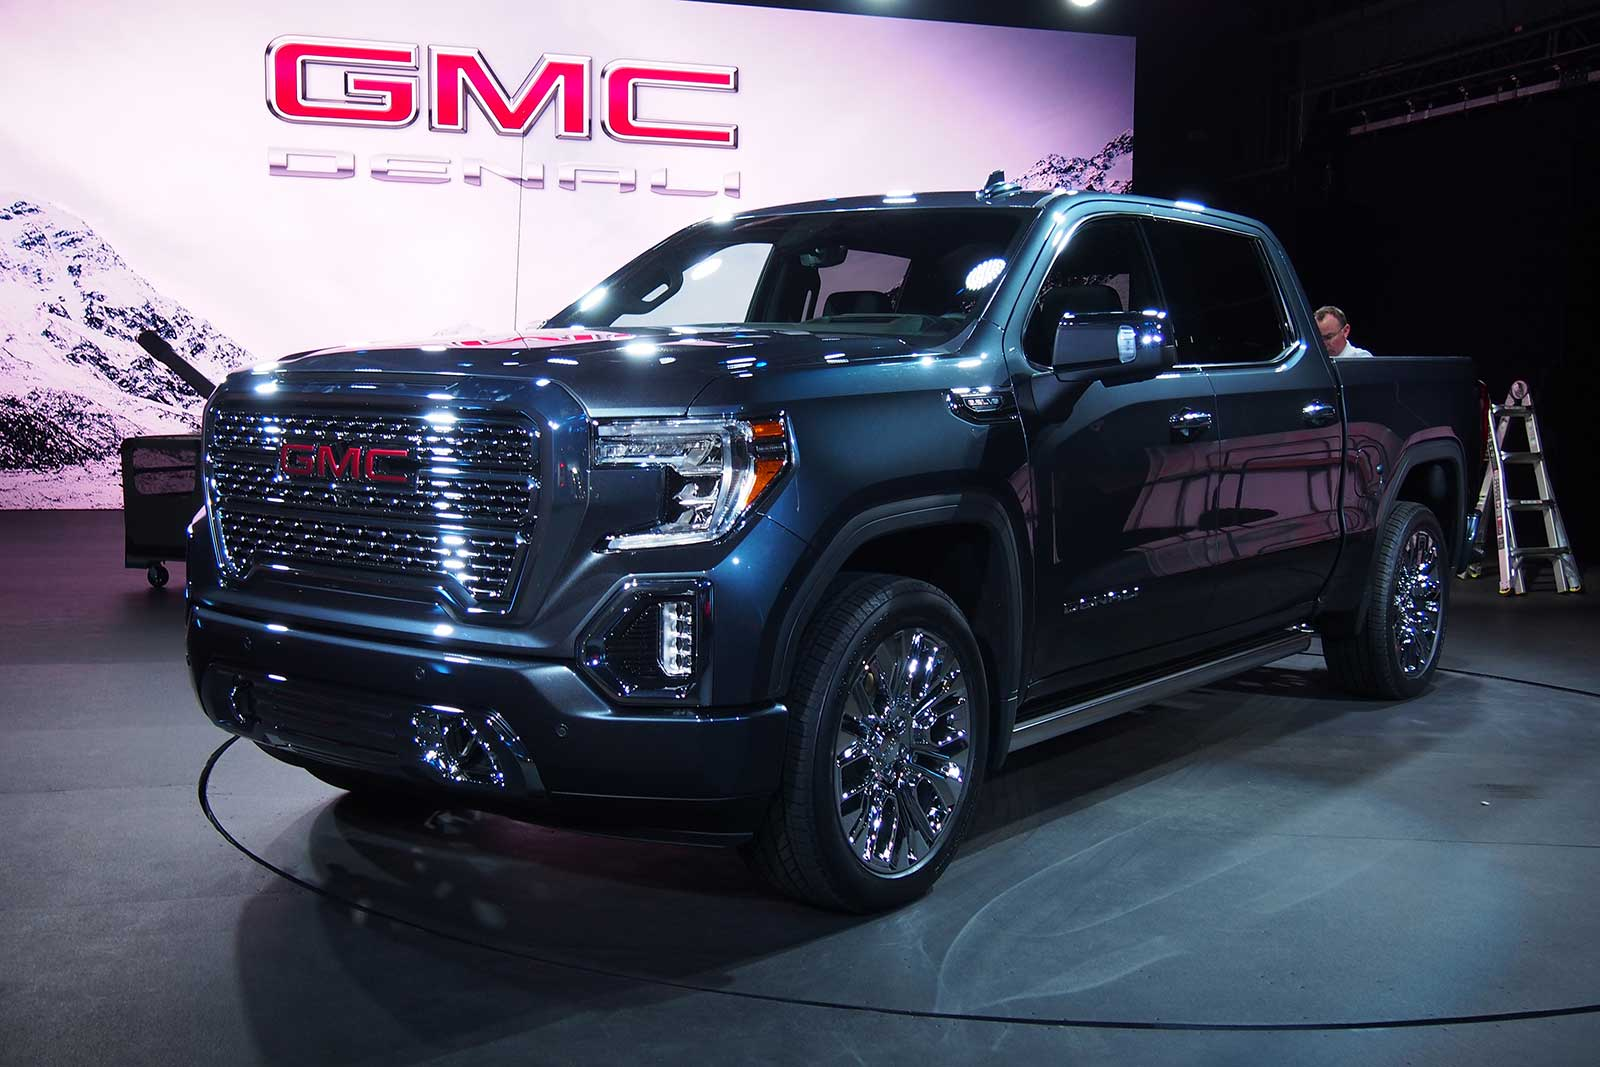 2019 Gmc Sierra Offers Carbon Fiber Bed Multi Position